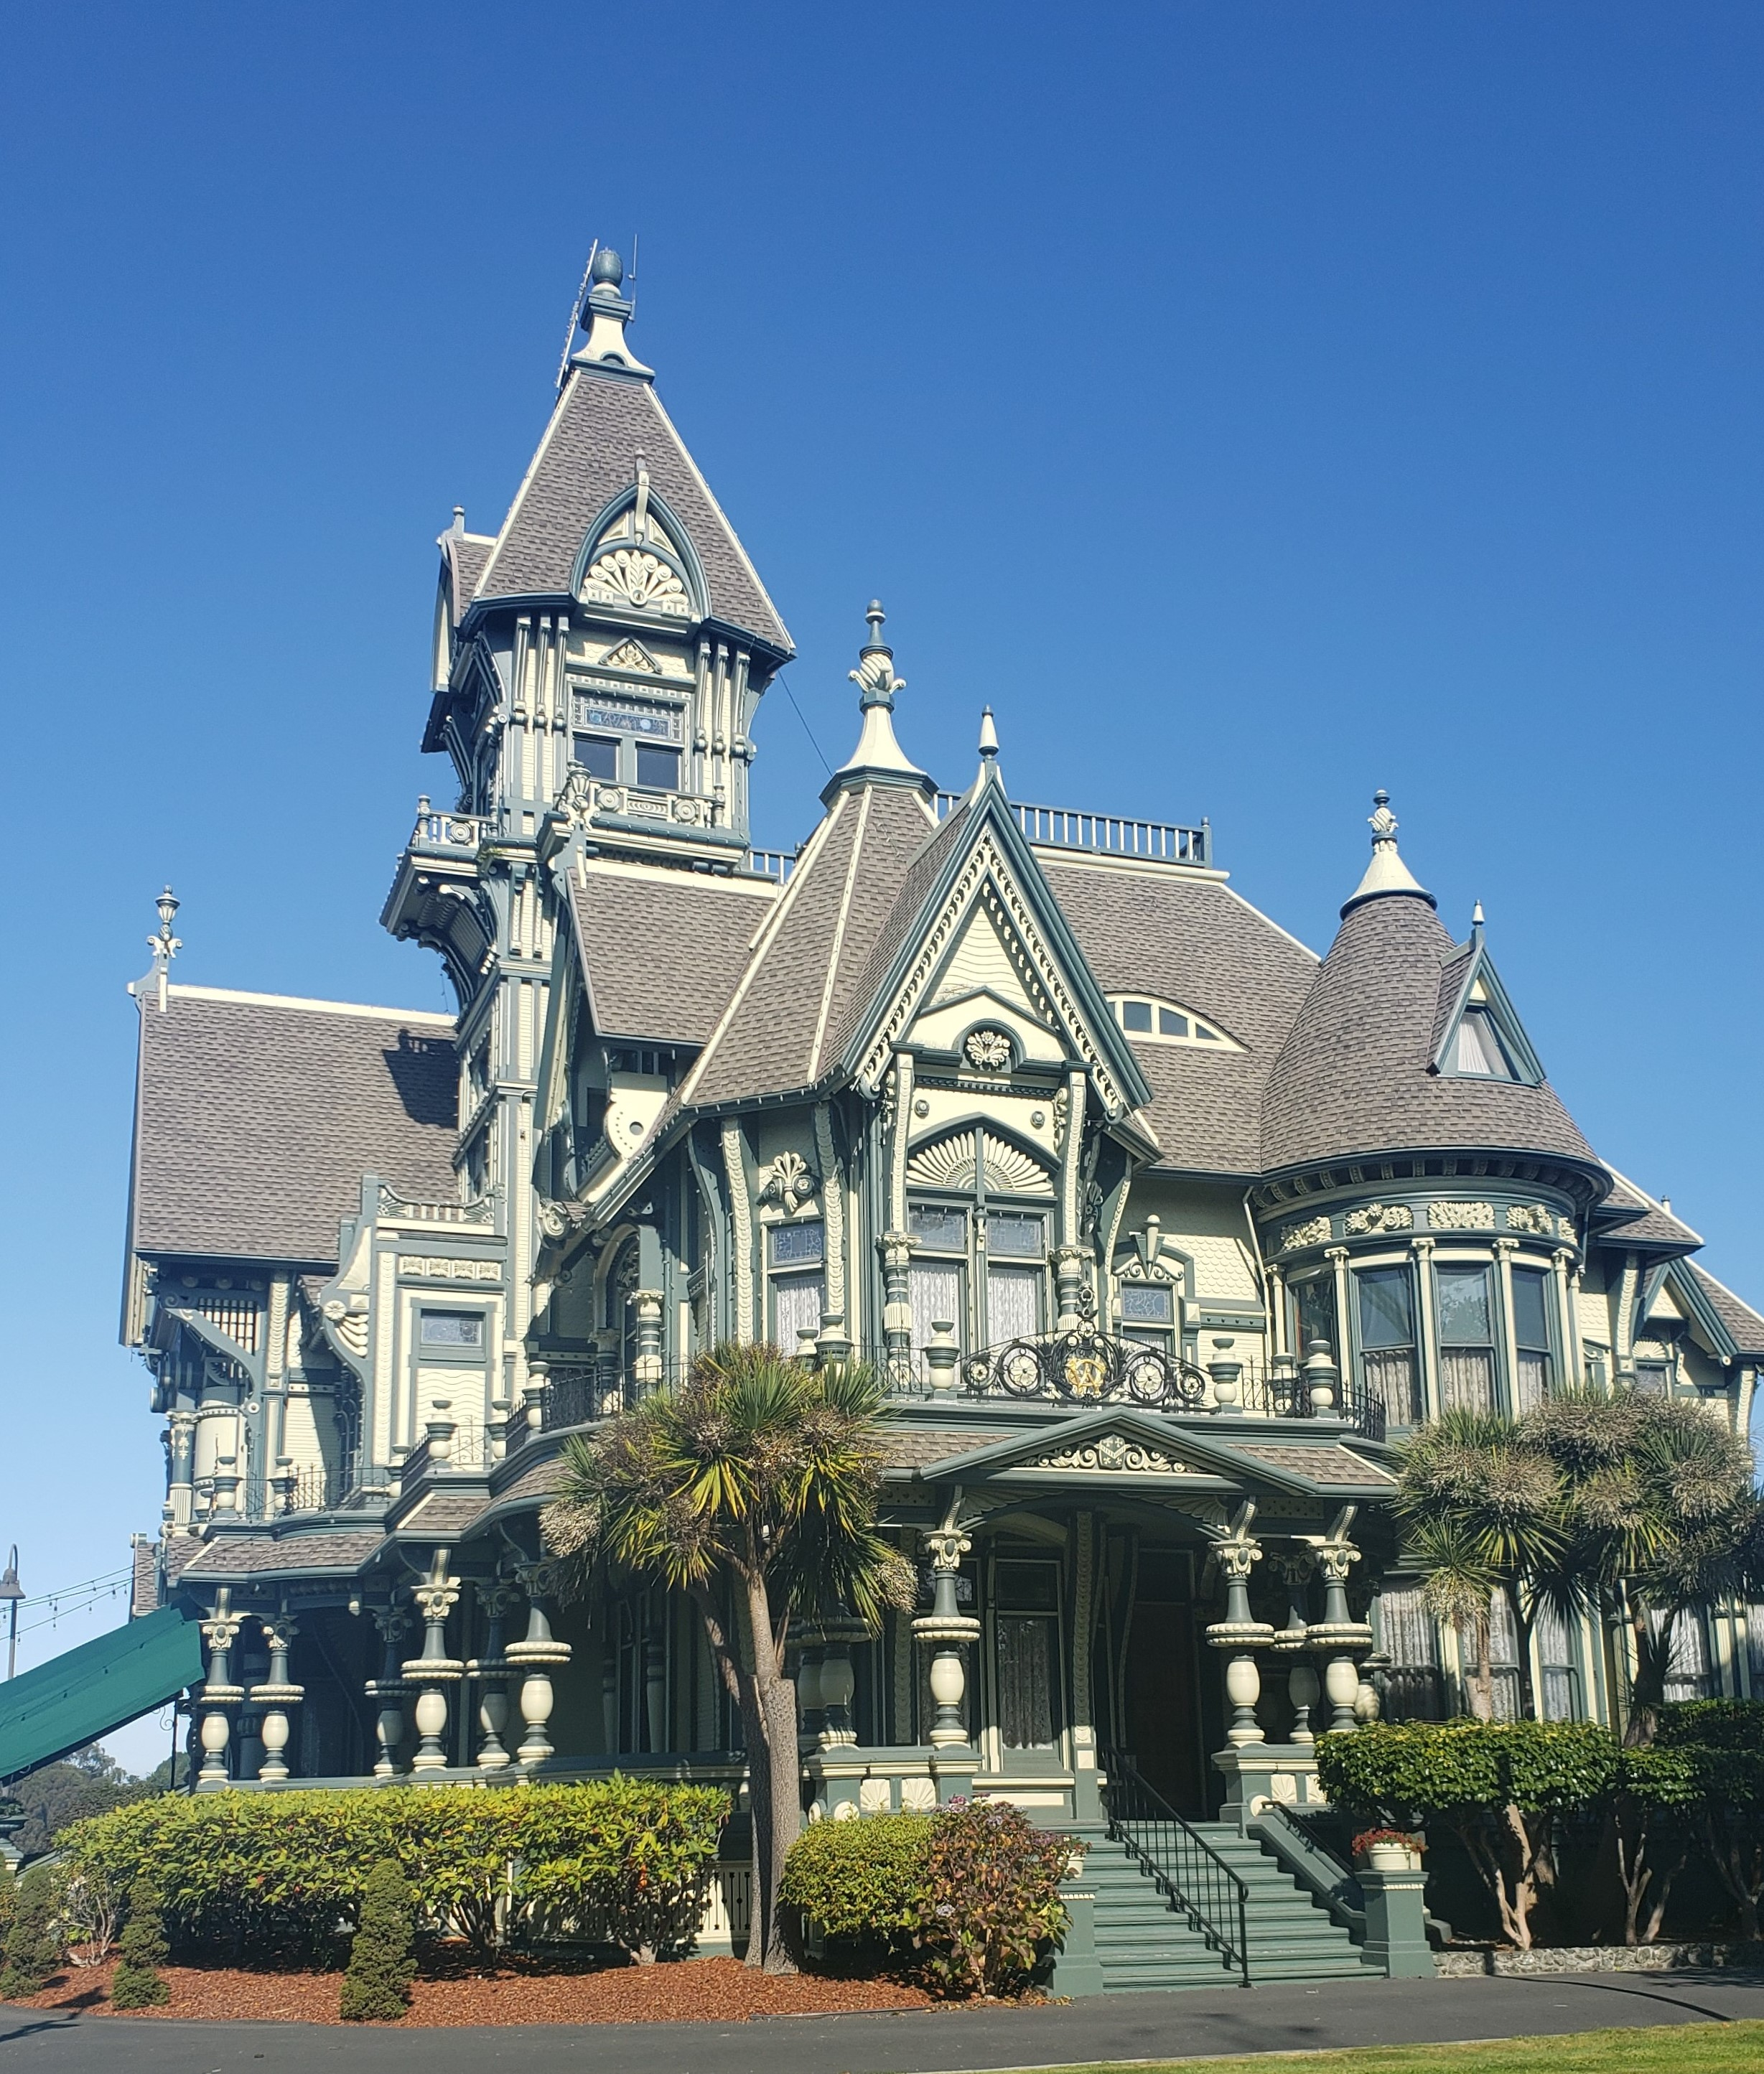 Large gray Victorian style manor